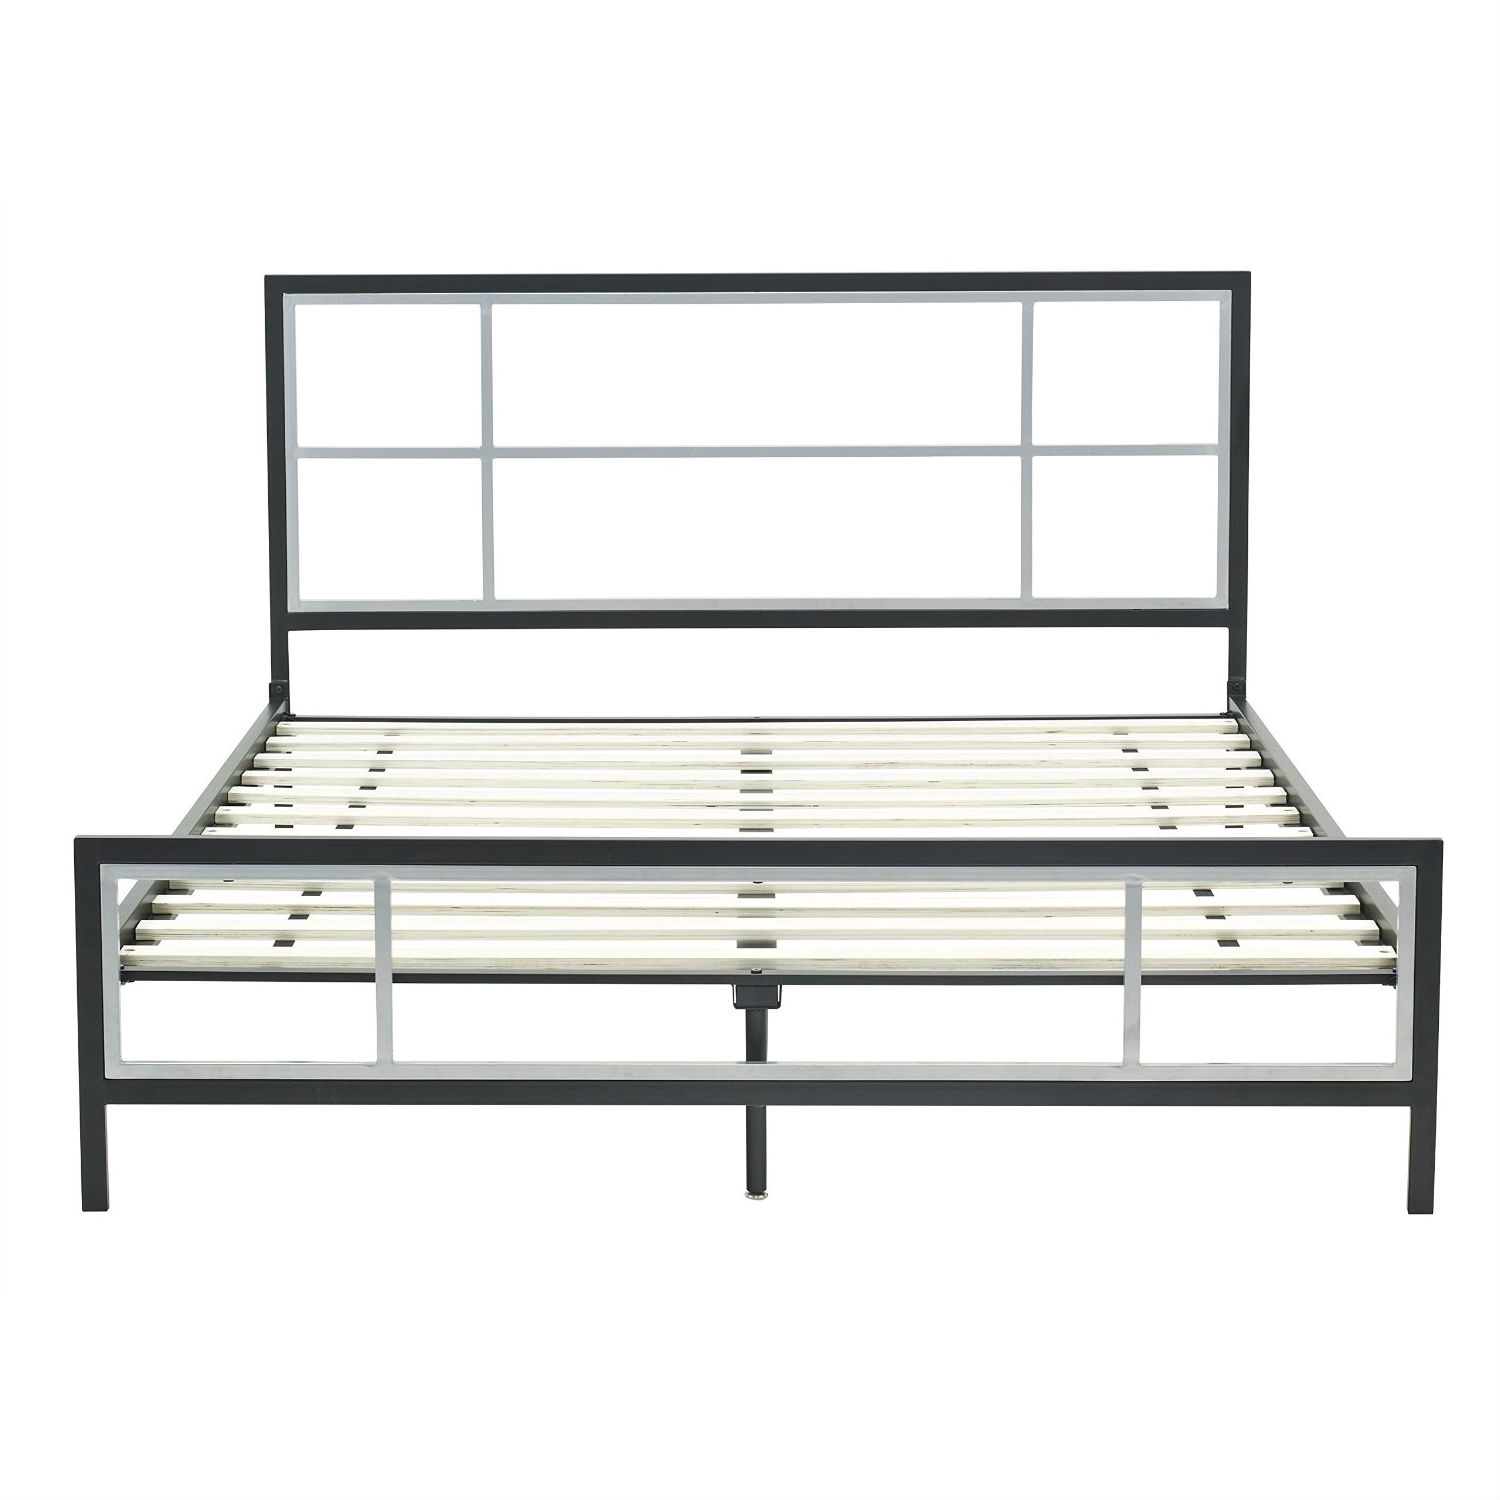 Bolt On Queen Size Metal Bed Frame For Headboard And Footboarddownload queen bed frames with headboard and footboard bedroom